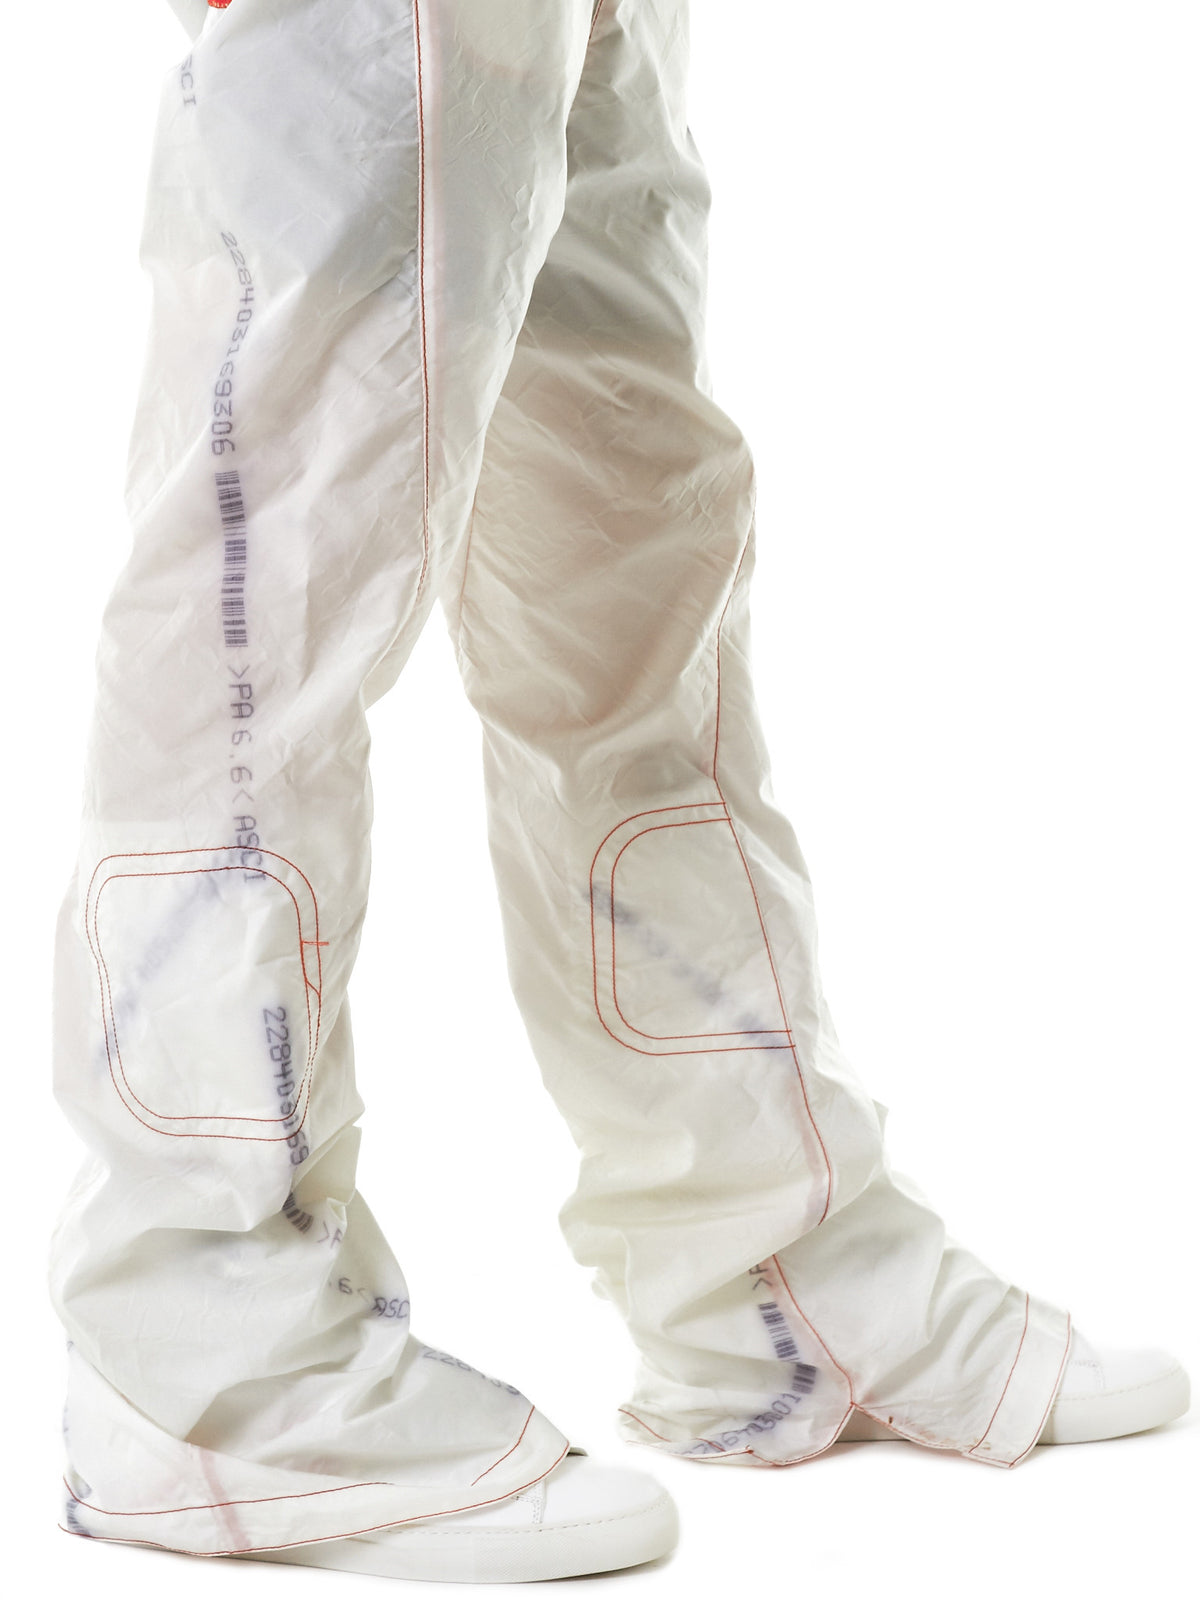 Engineered Threaded Trousers (TRS02-OFF-WHITE) - H. Lorenzo